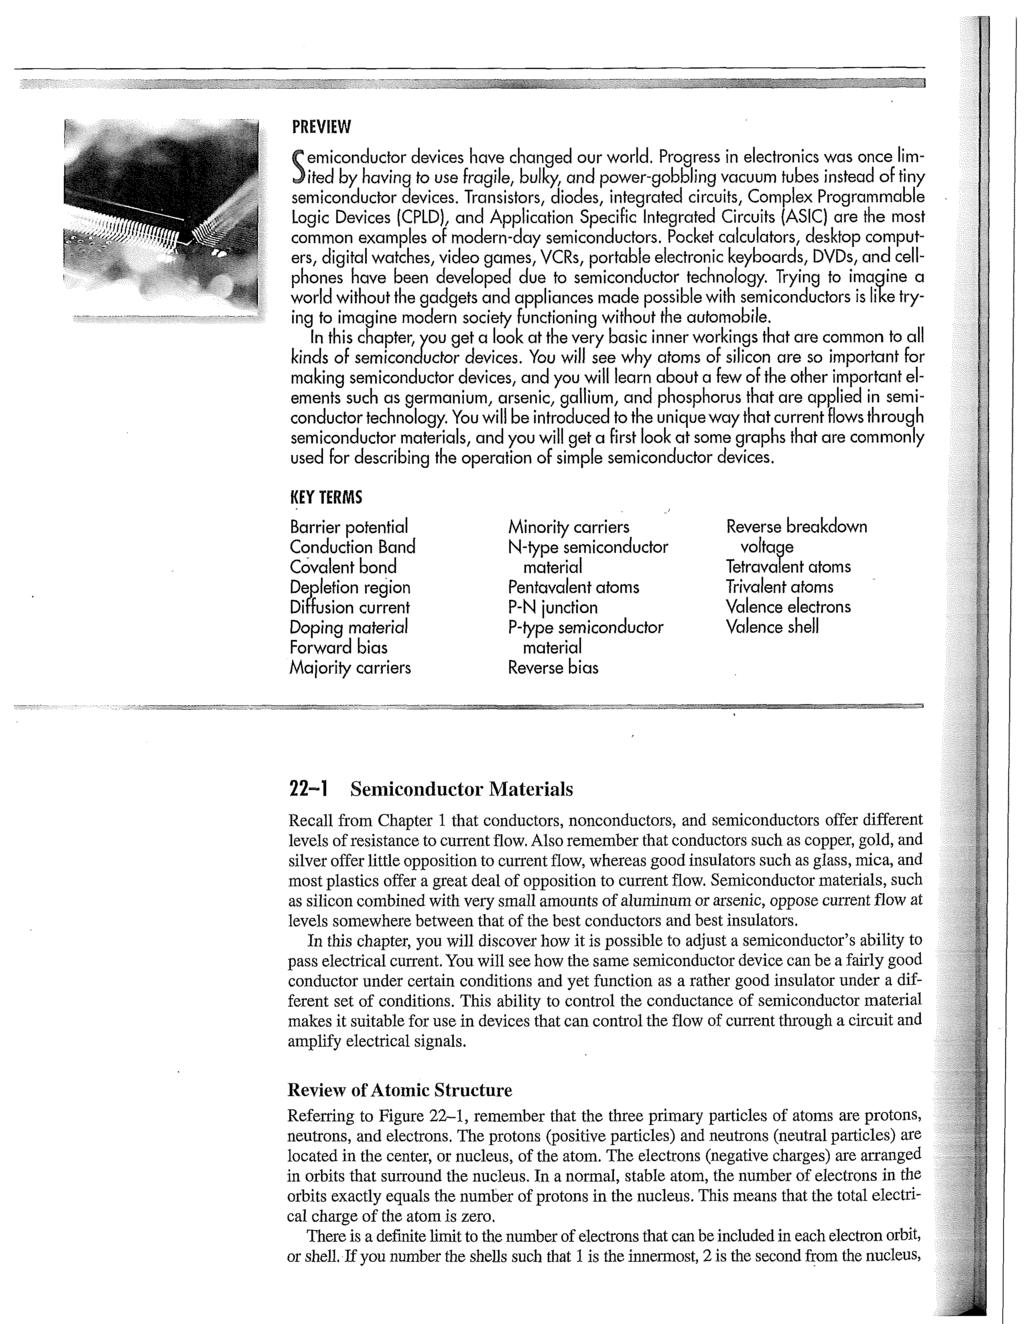 Semiconductor Materials and P-I Junctions - PDF